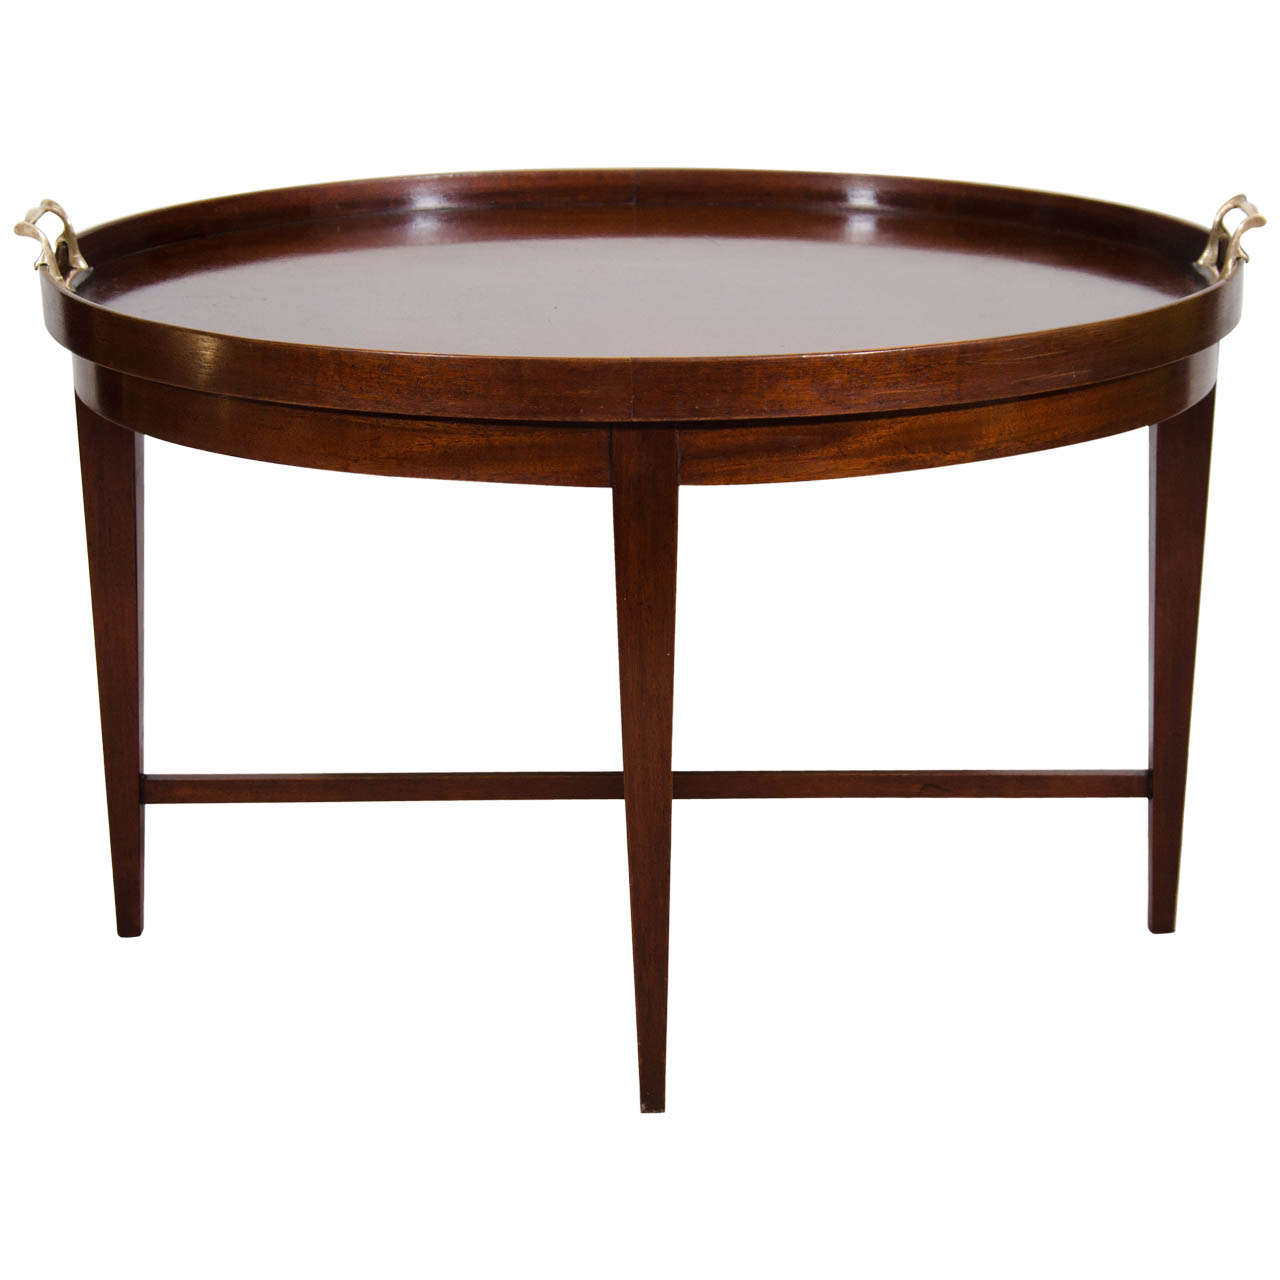 Mid century oval shaped coffee or cocktail table by baker furniture co at 1stdibs Baker coffee table